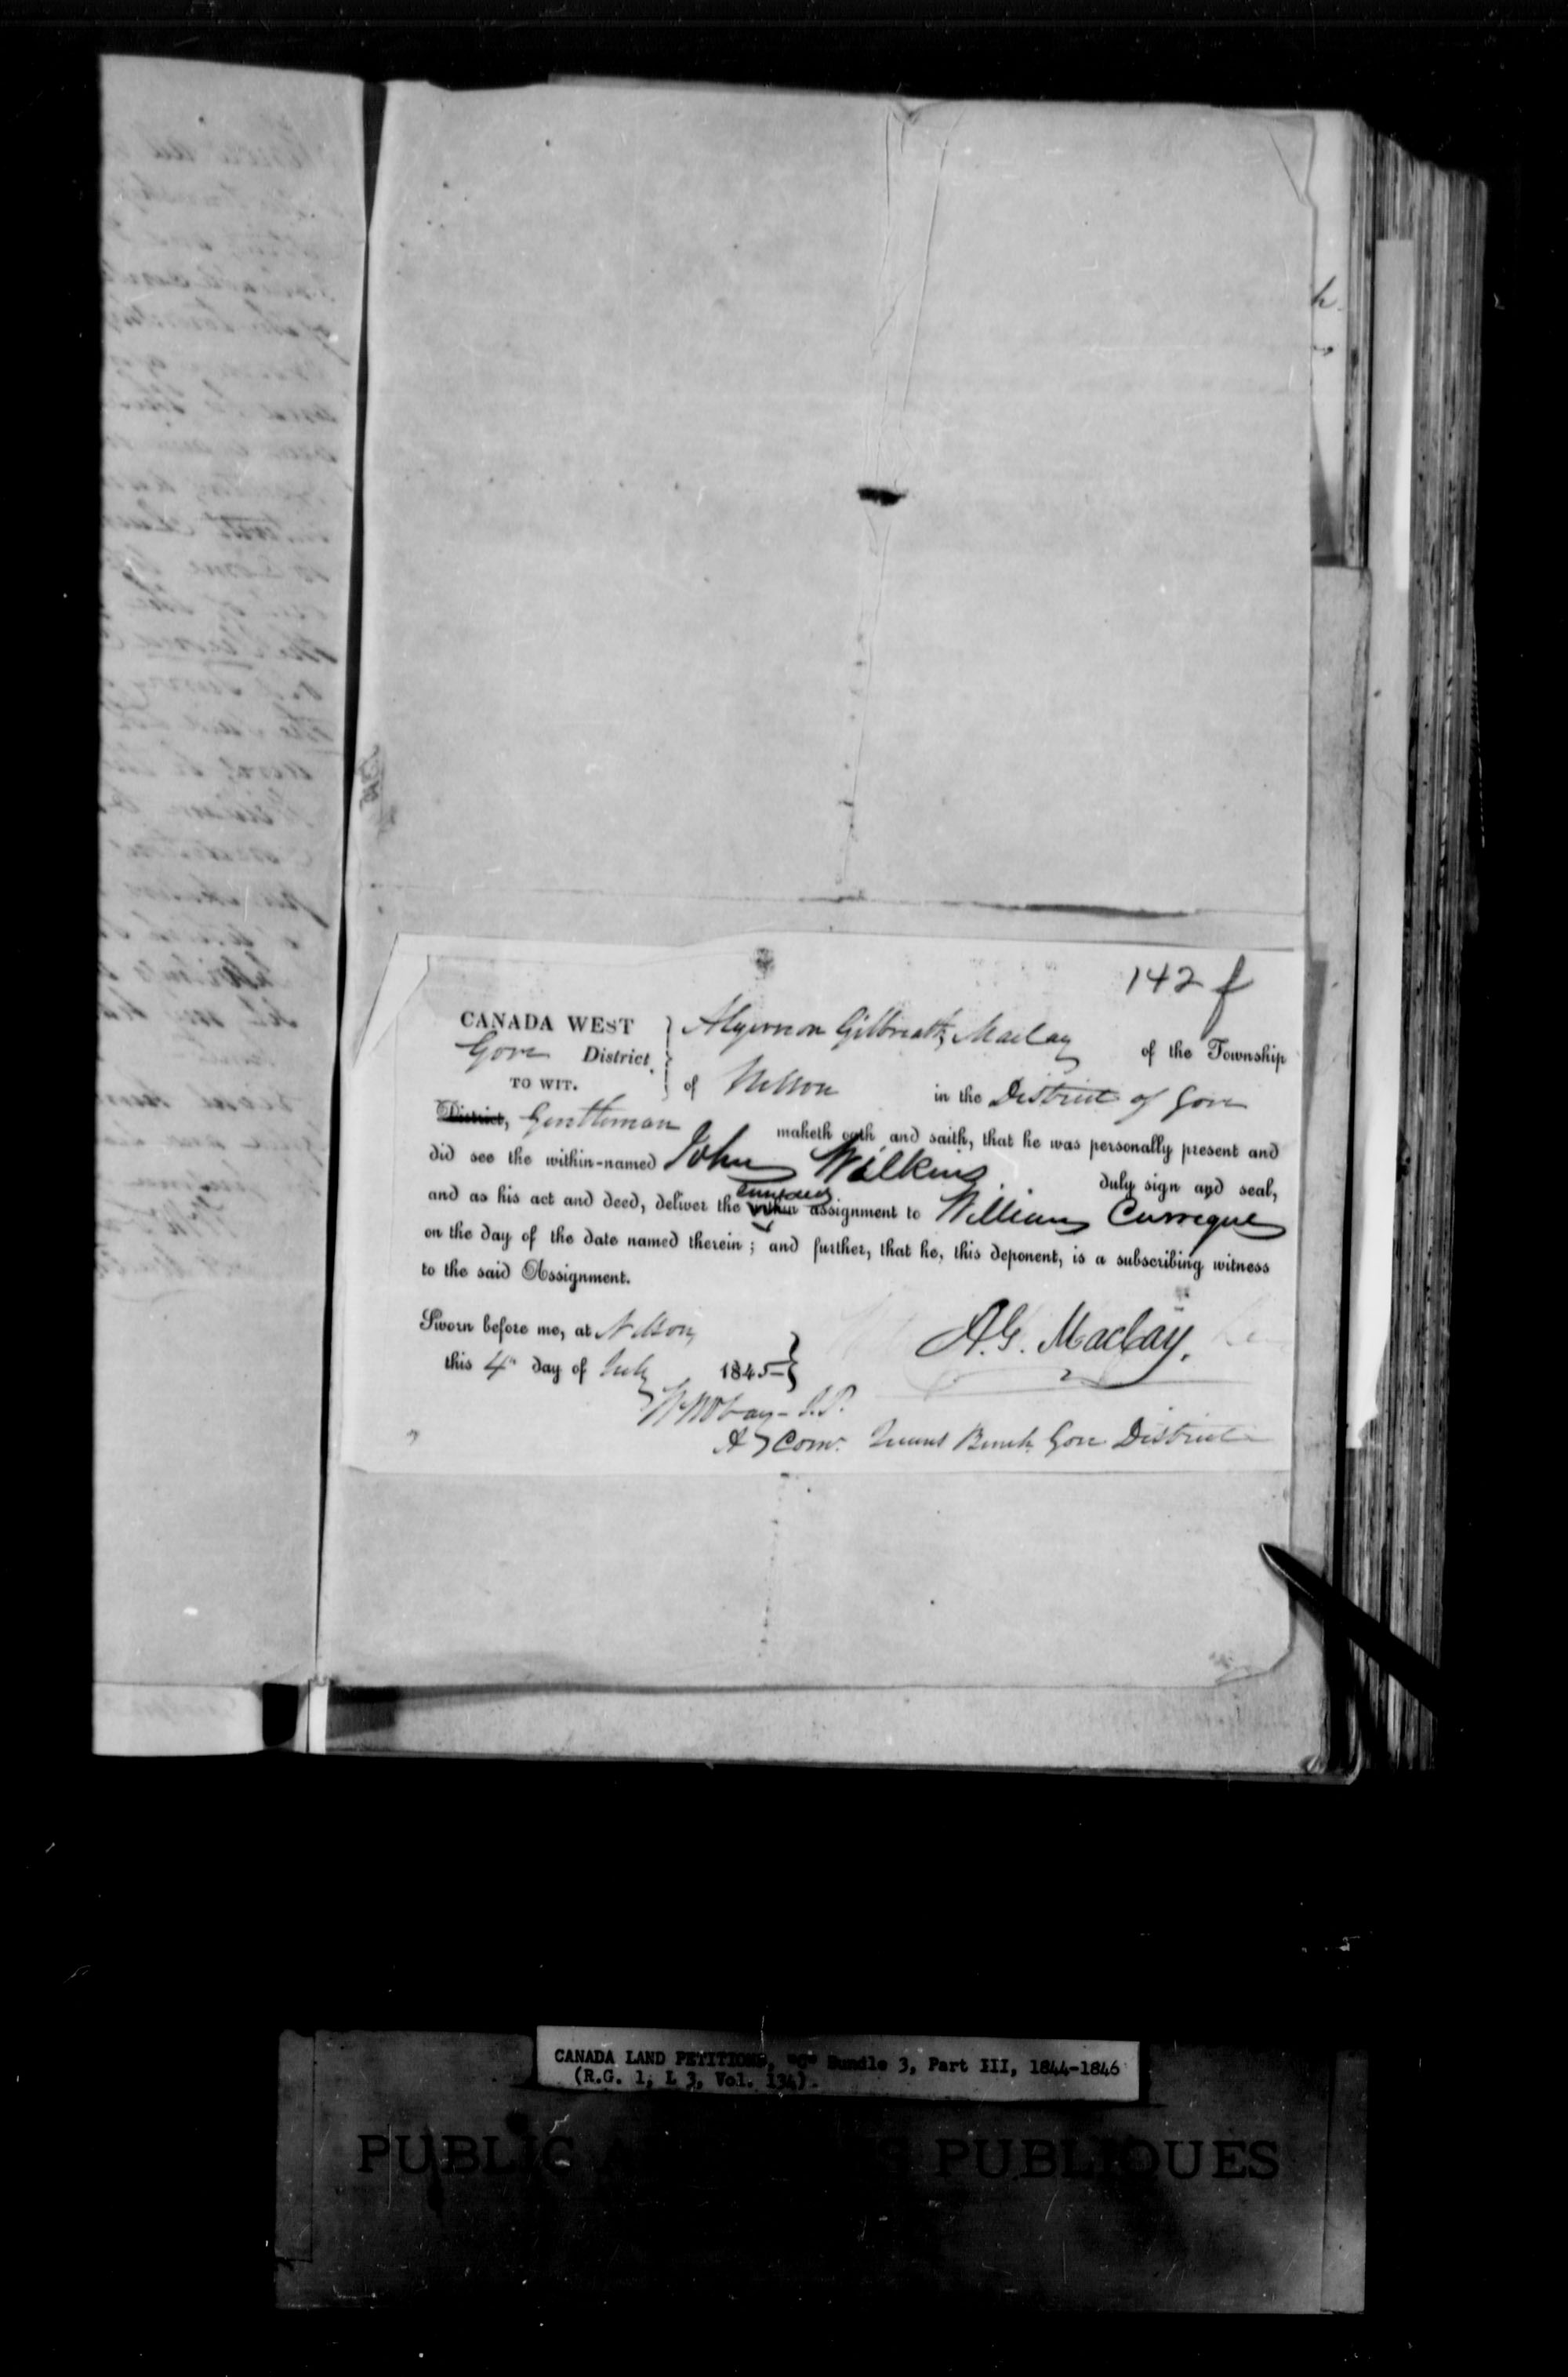 Title: Upper Canada Land Petitions (1763-1865) - Mikan Number: 205131 - Microform: c-1734